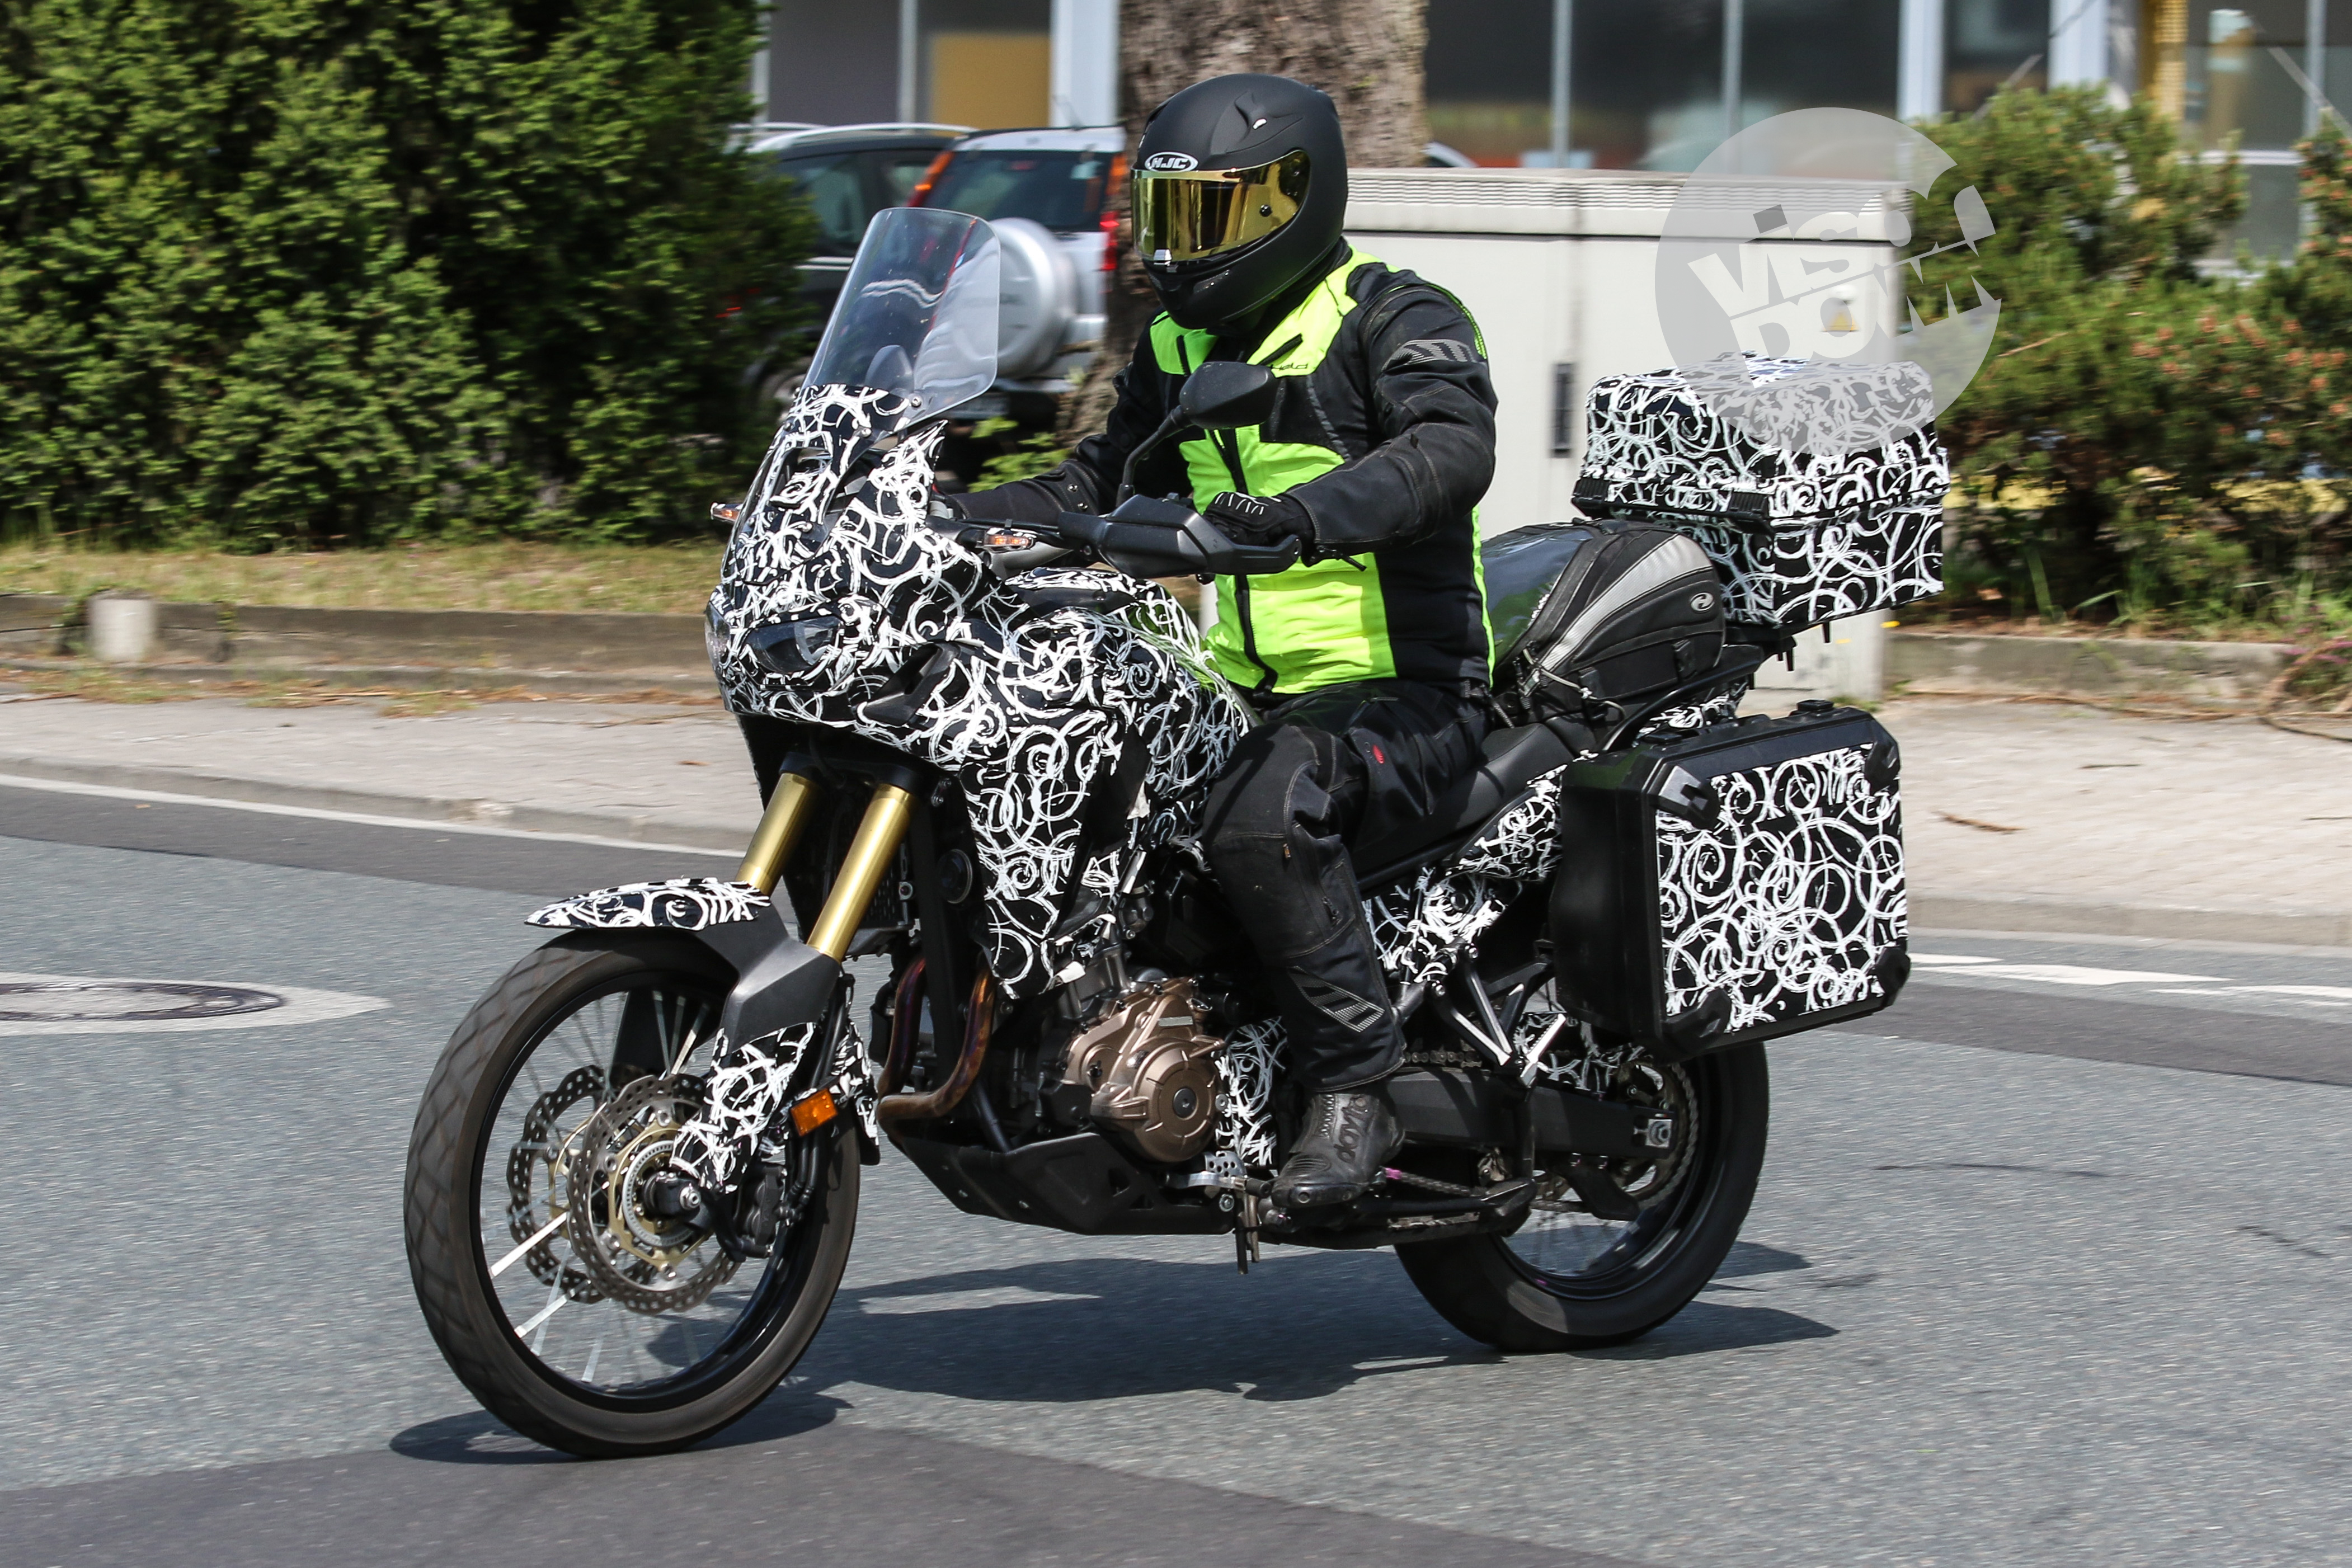 Touring-spec Africa Twin spotted